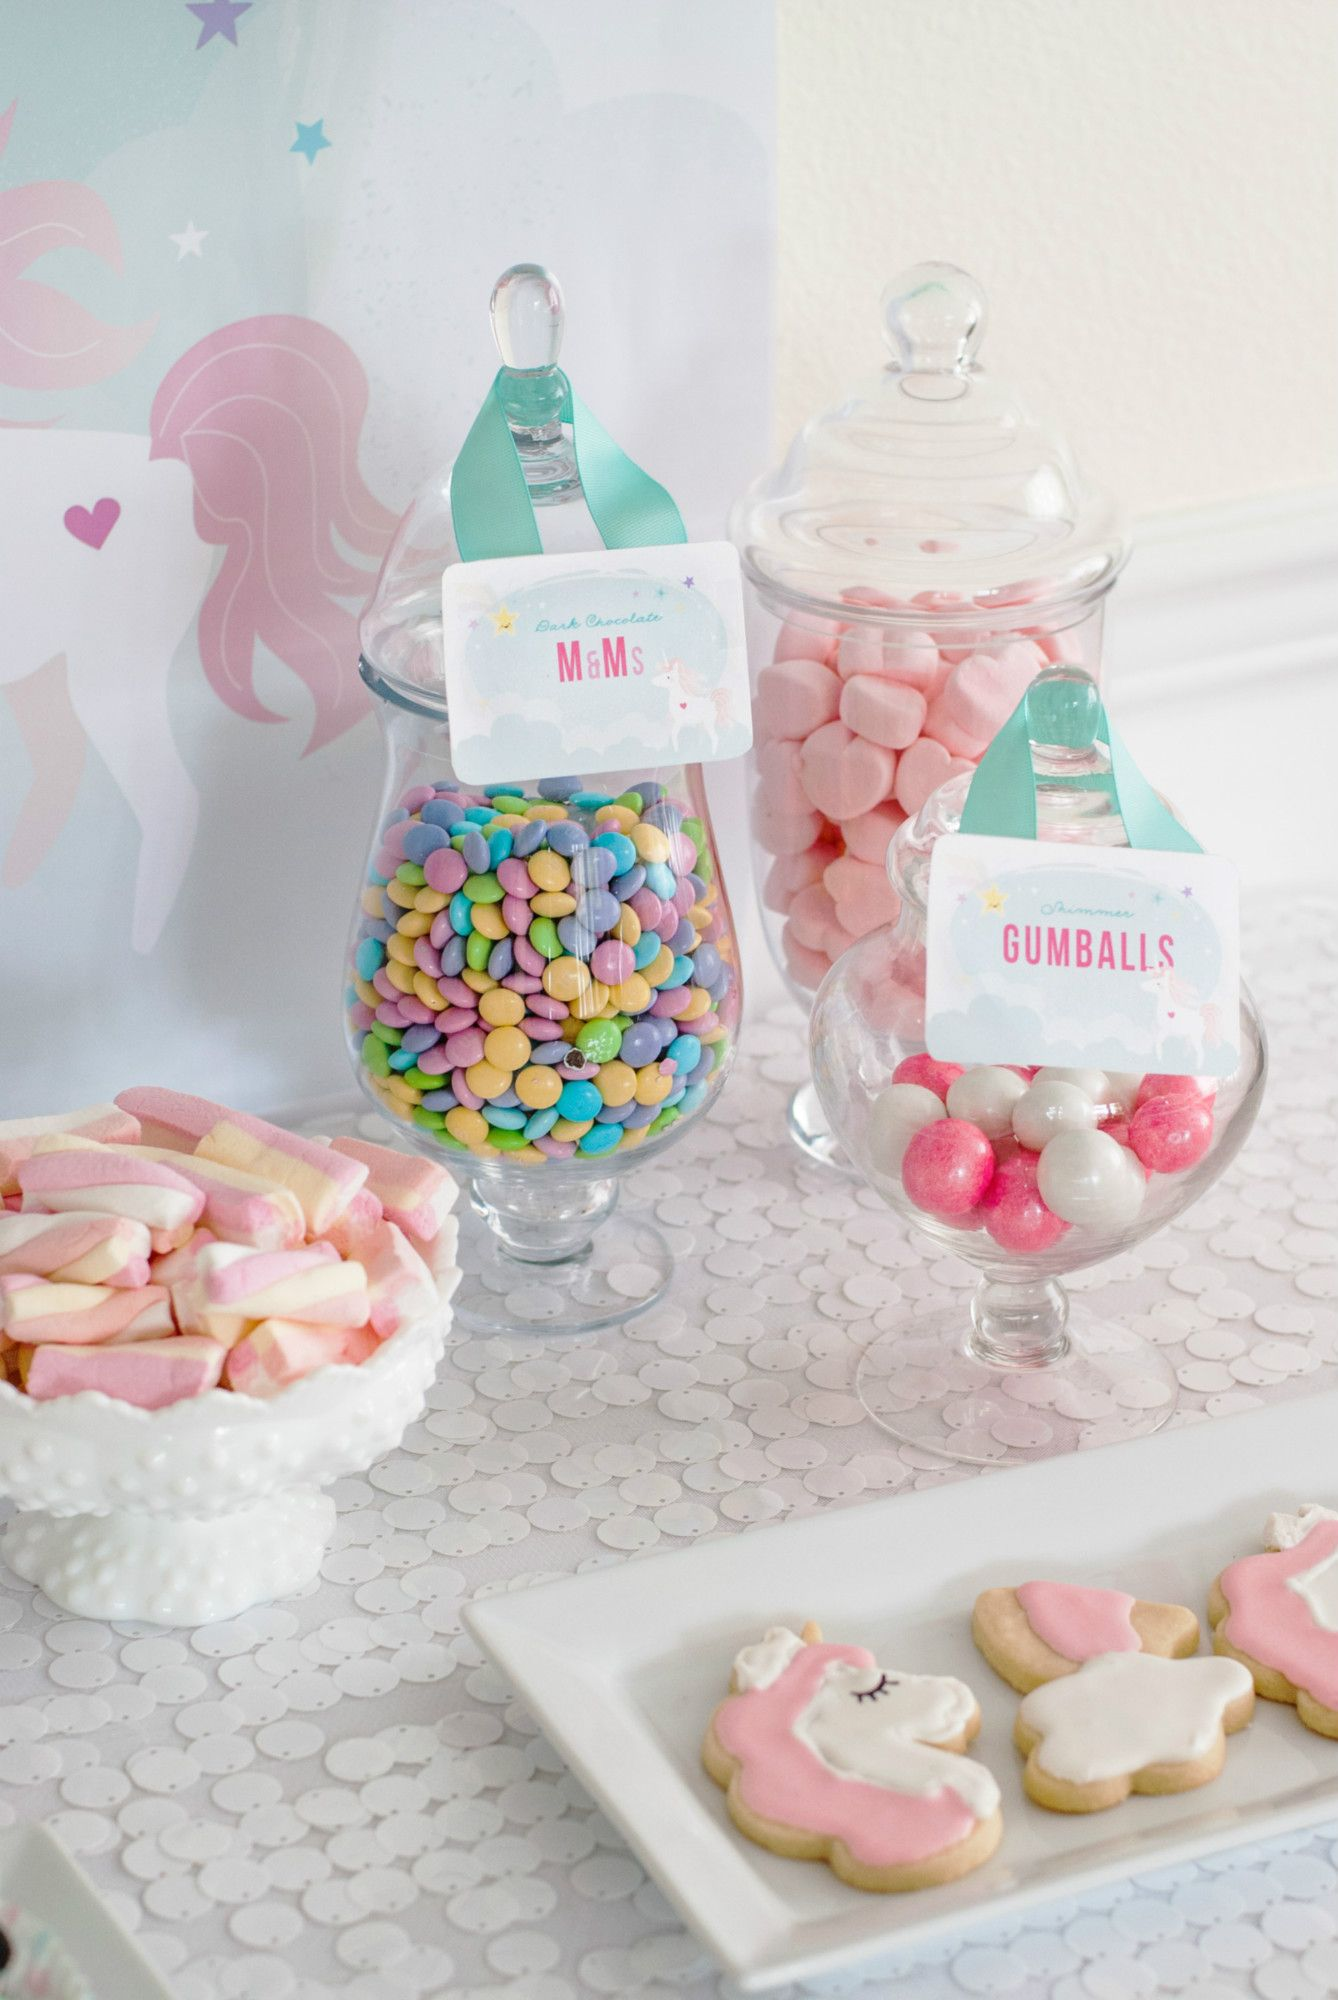 Unicorn Candy Table Ideas : unicorn, candy, table, ideas, Candy, Cookies, Magical, Unicorn, Party, Dessert, Table, Black, Twi…, Birthday, Decorations,, Desserts,, Themed